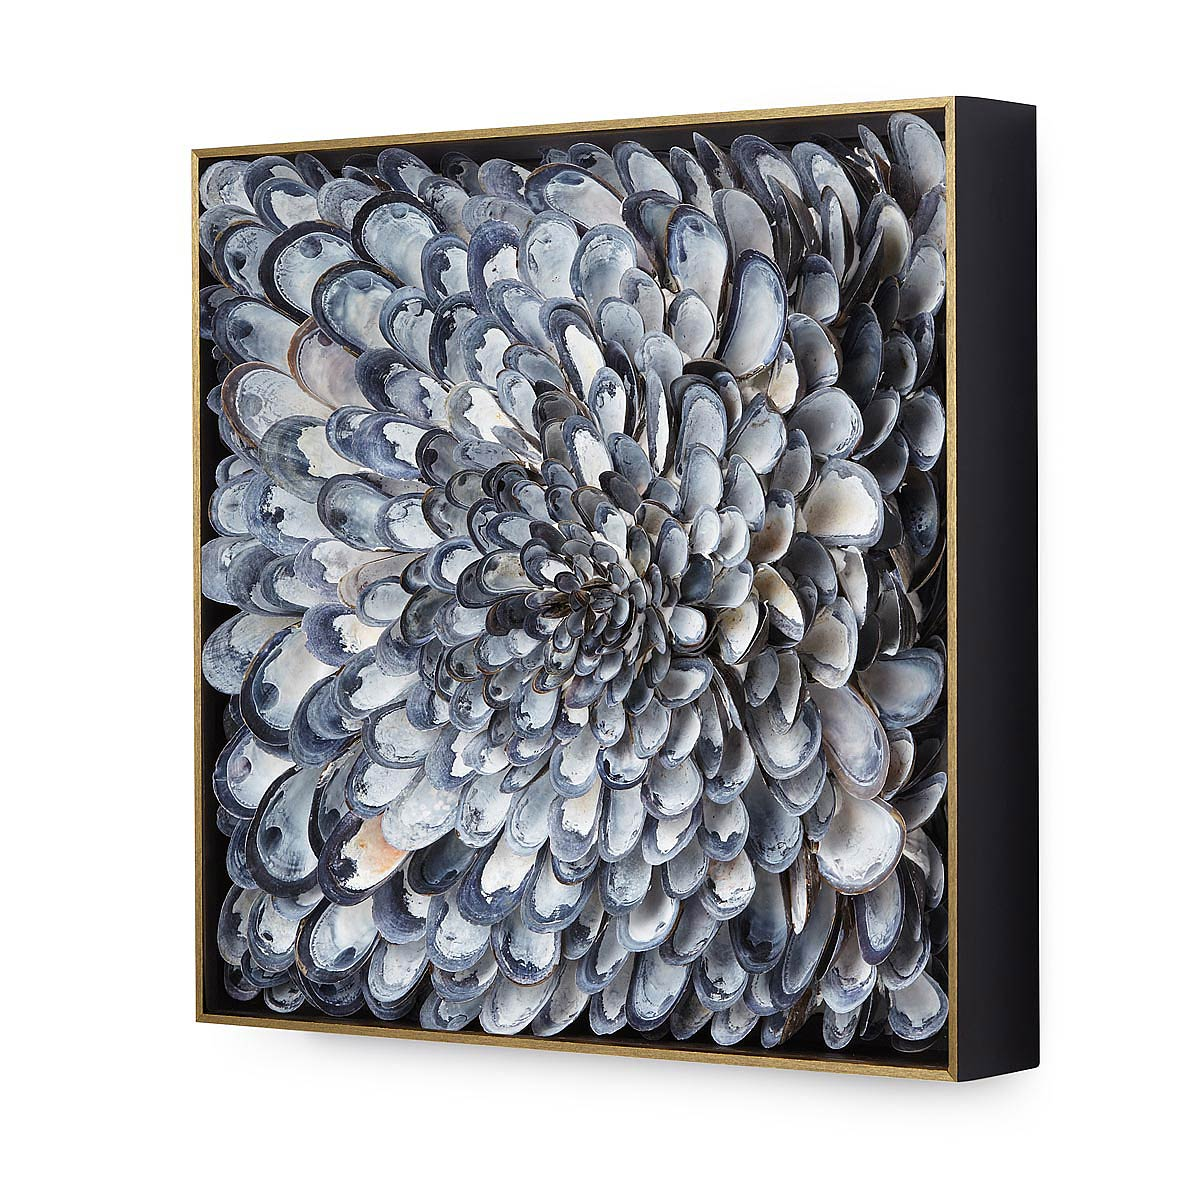 susie macmurray - mussel shell installation (detail) - Pictify ...